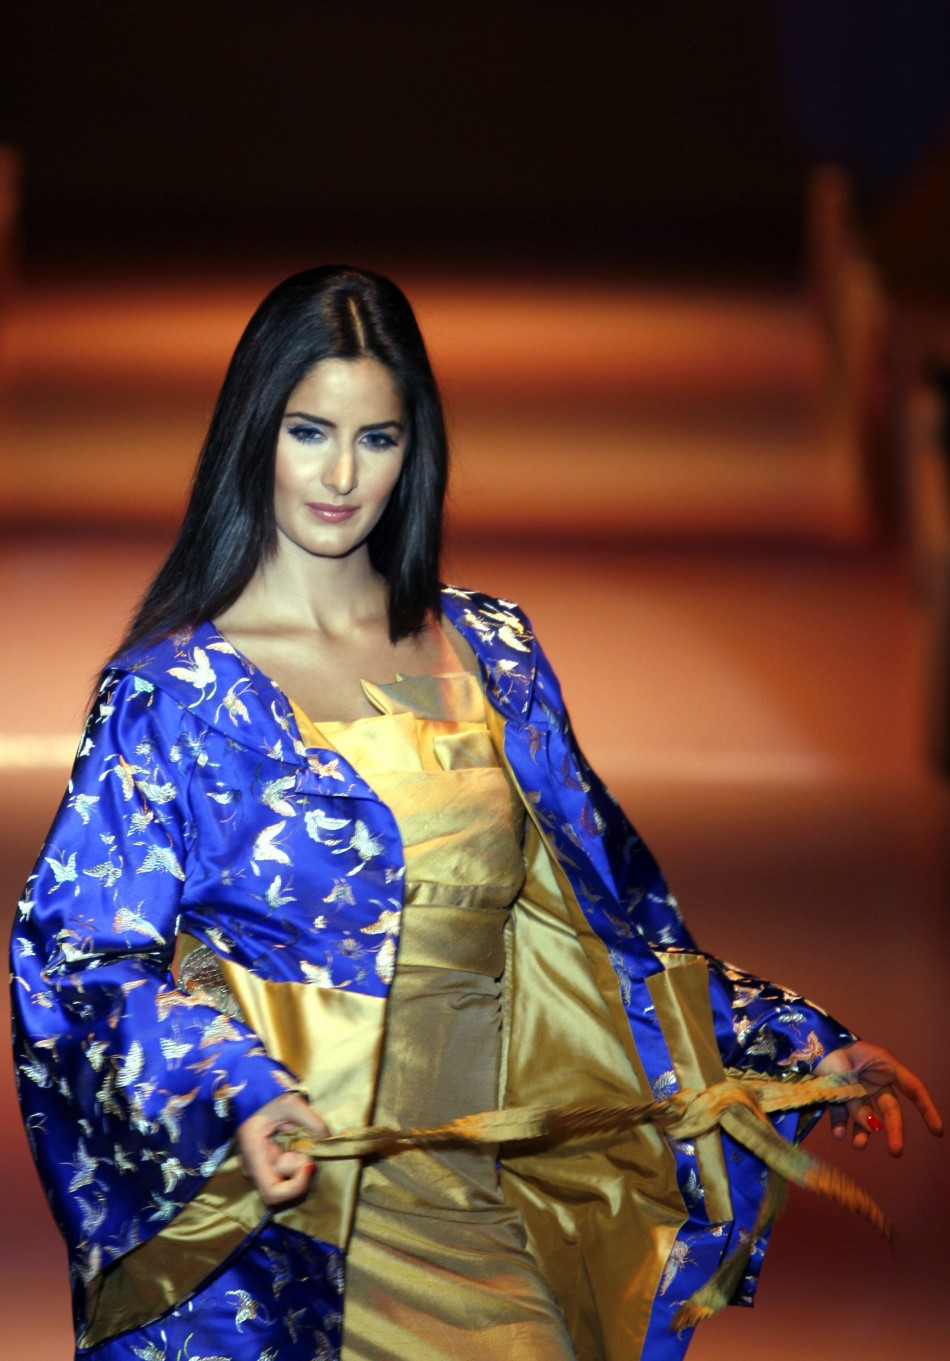 Kaif displays an outfit by Indian designer Narendra Kumar during the grand finale of India fashion week in Mumbai March 31, 2007.